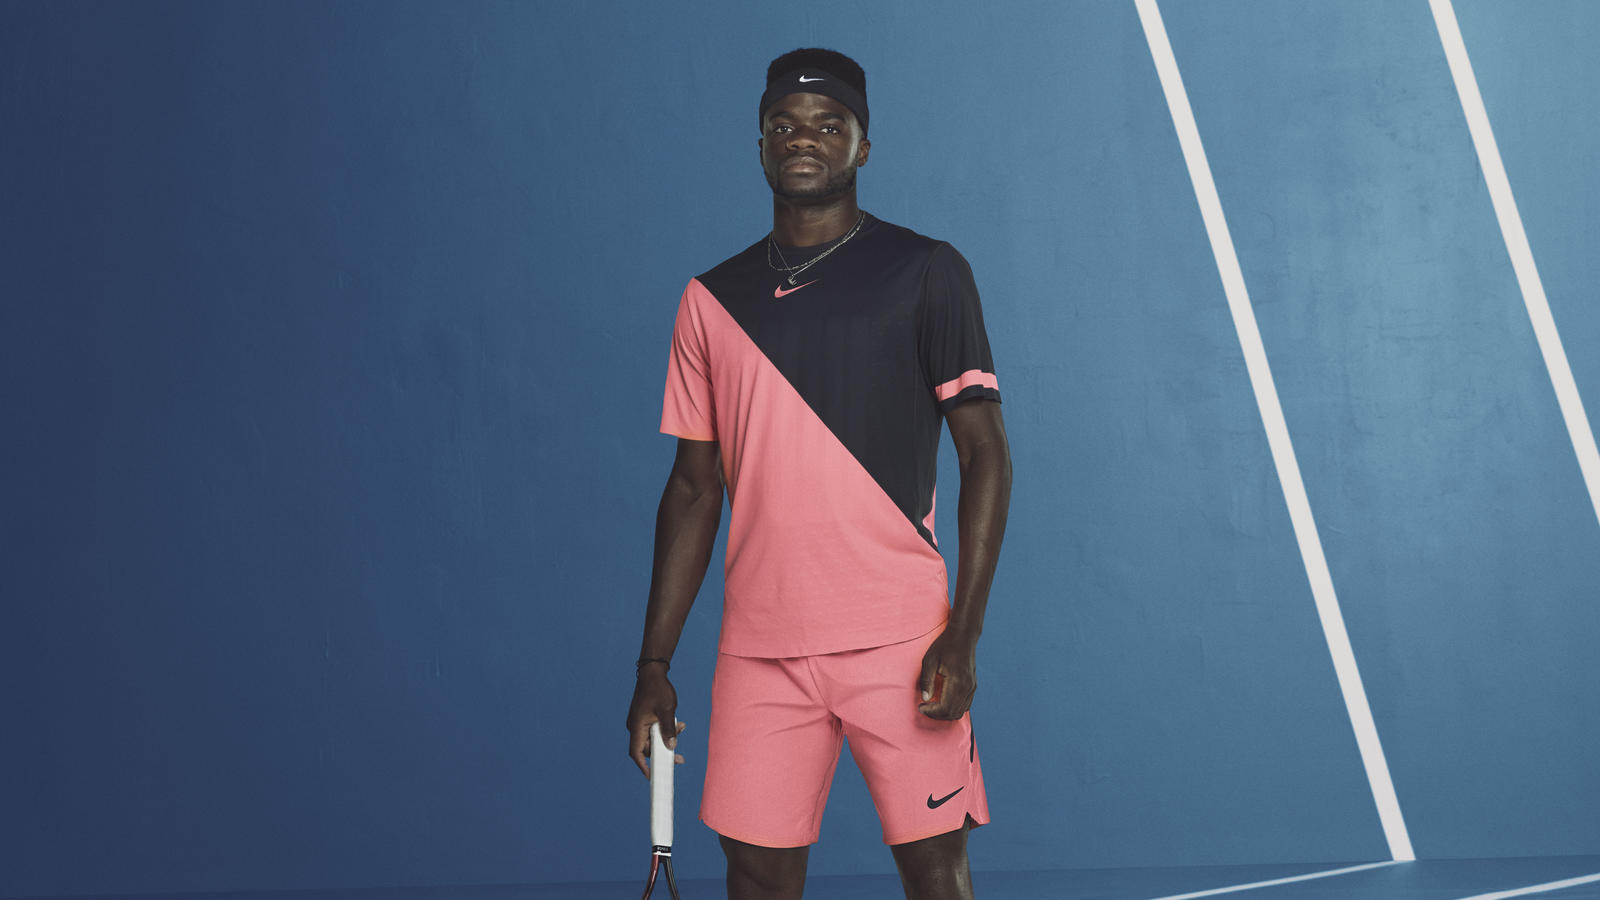 nike tennis outfits 2018